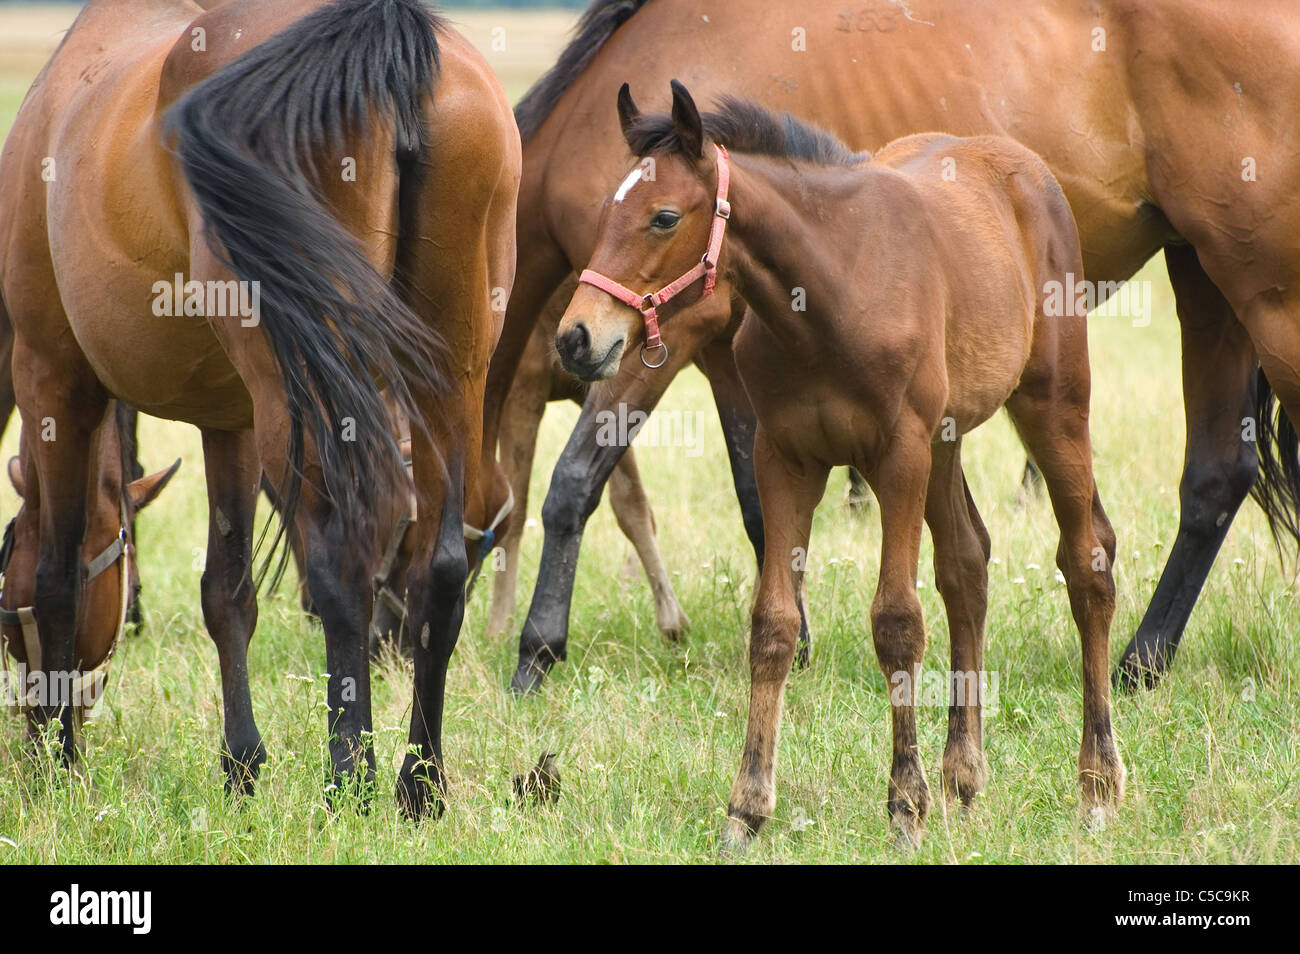 A foal with a herd of horses on a pasture - Stock Image